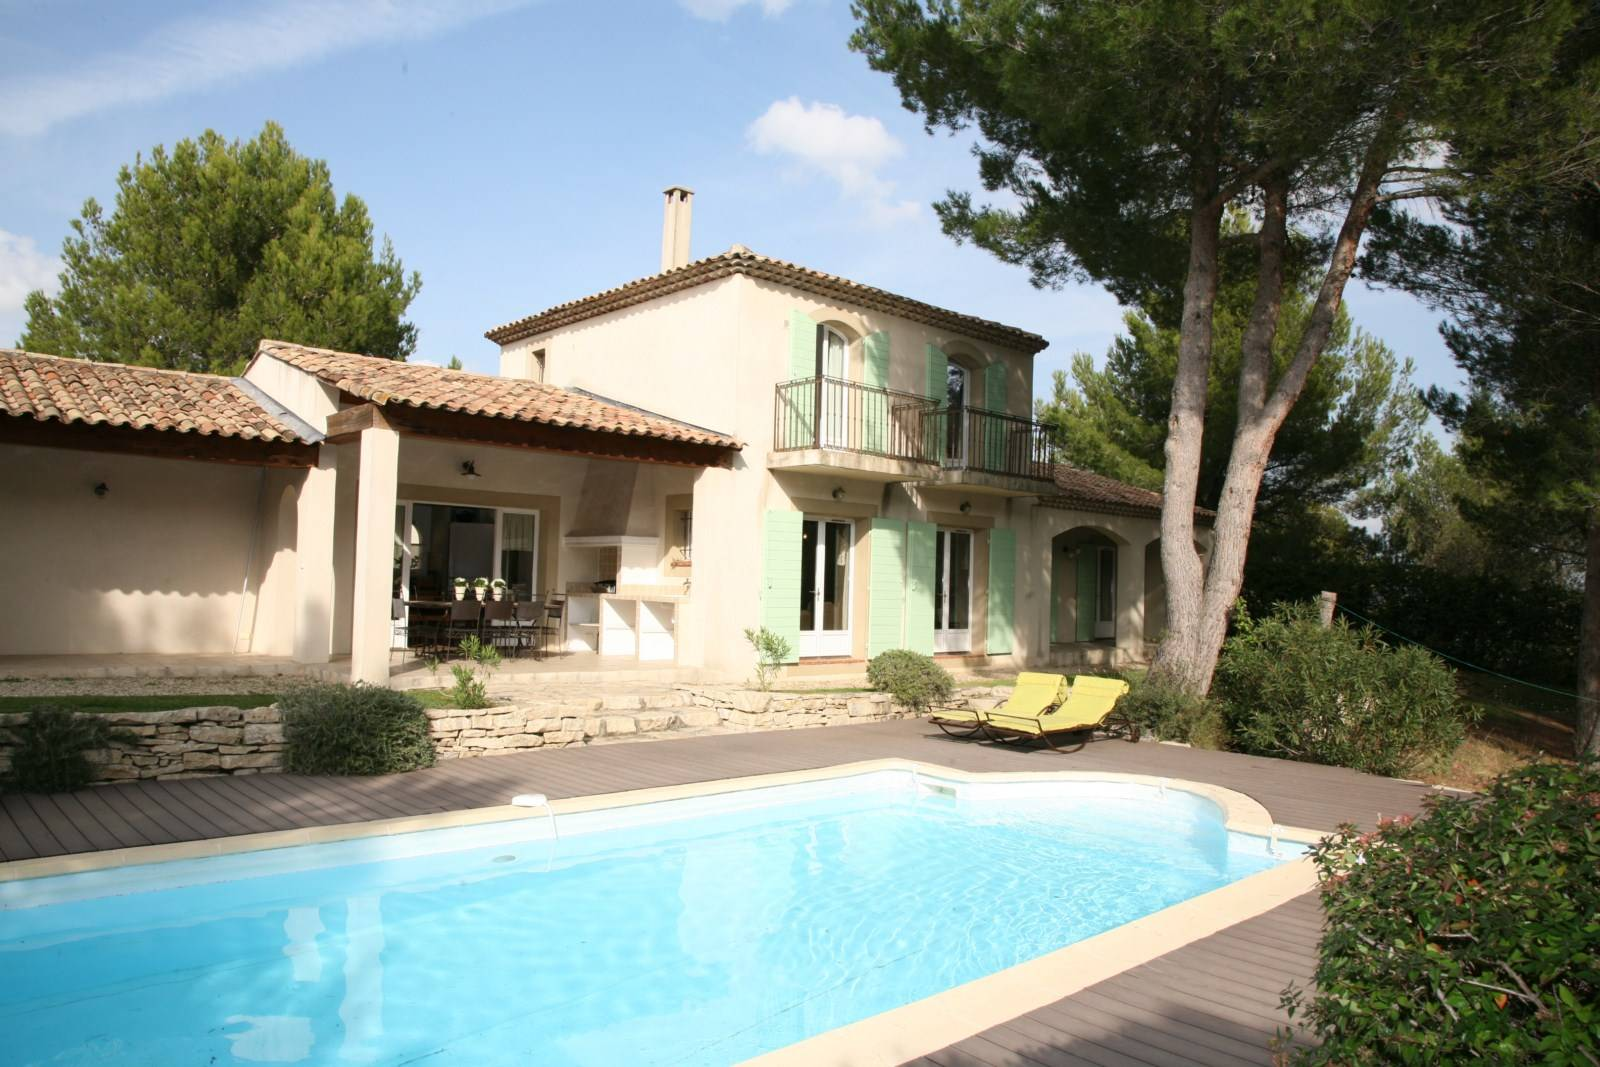 Magnificent villa stunning property real estate pont royal luberon john cheetham - Pont royal en provence office du tourisme ...